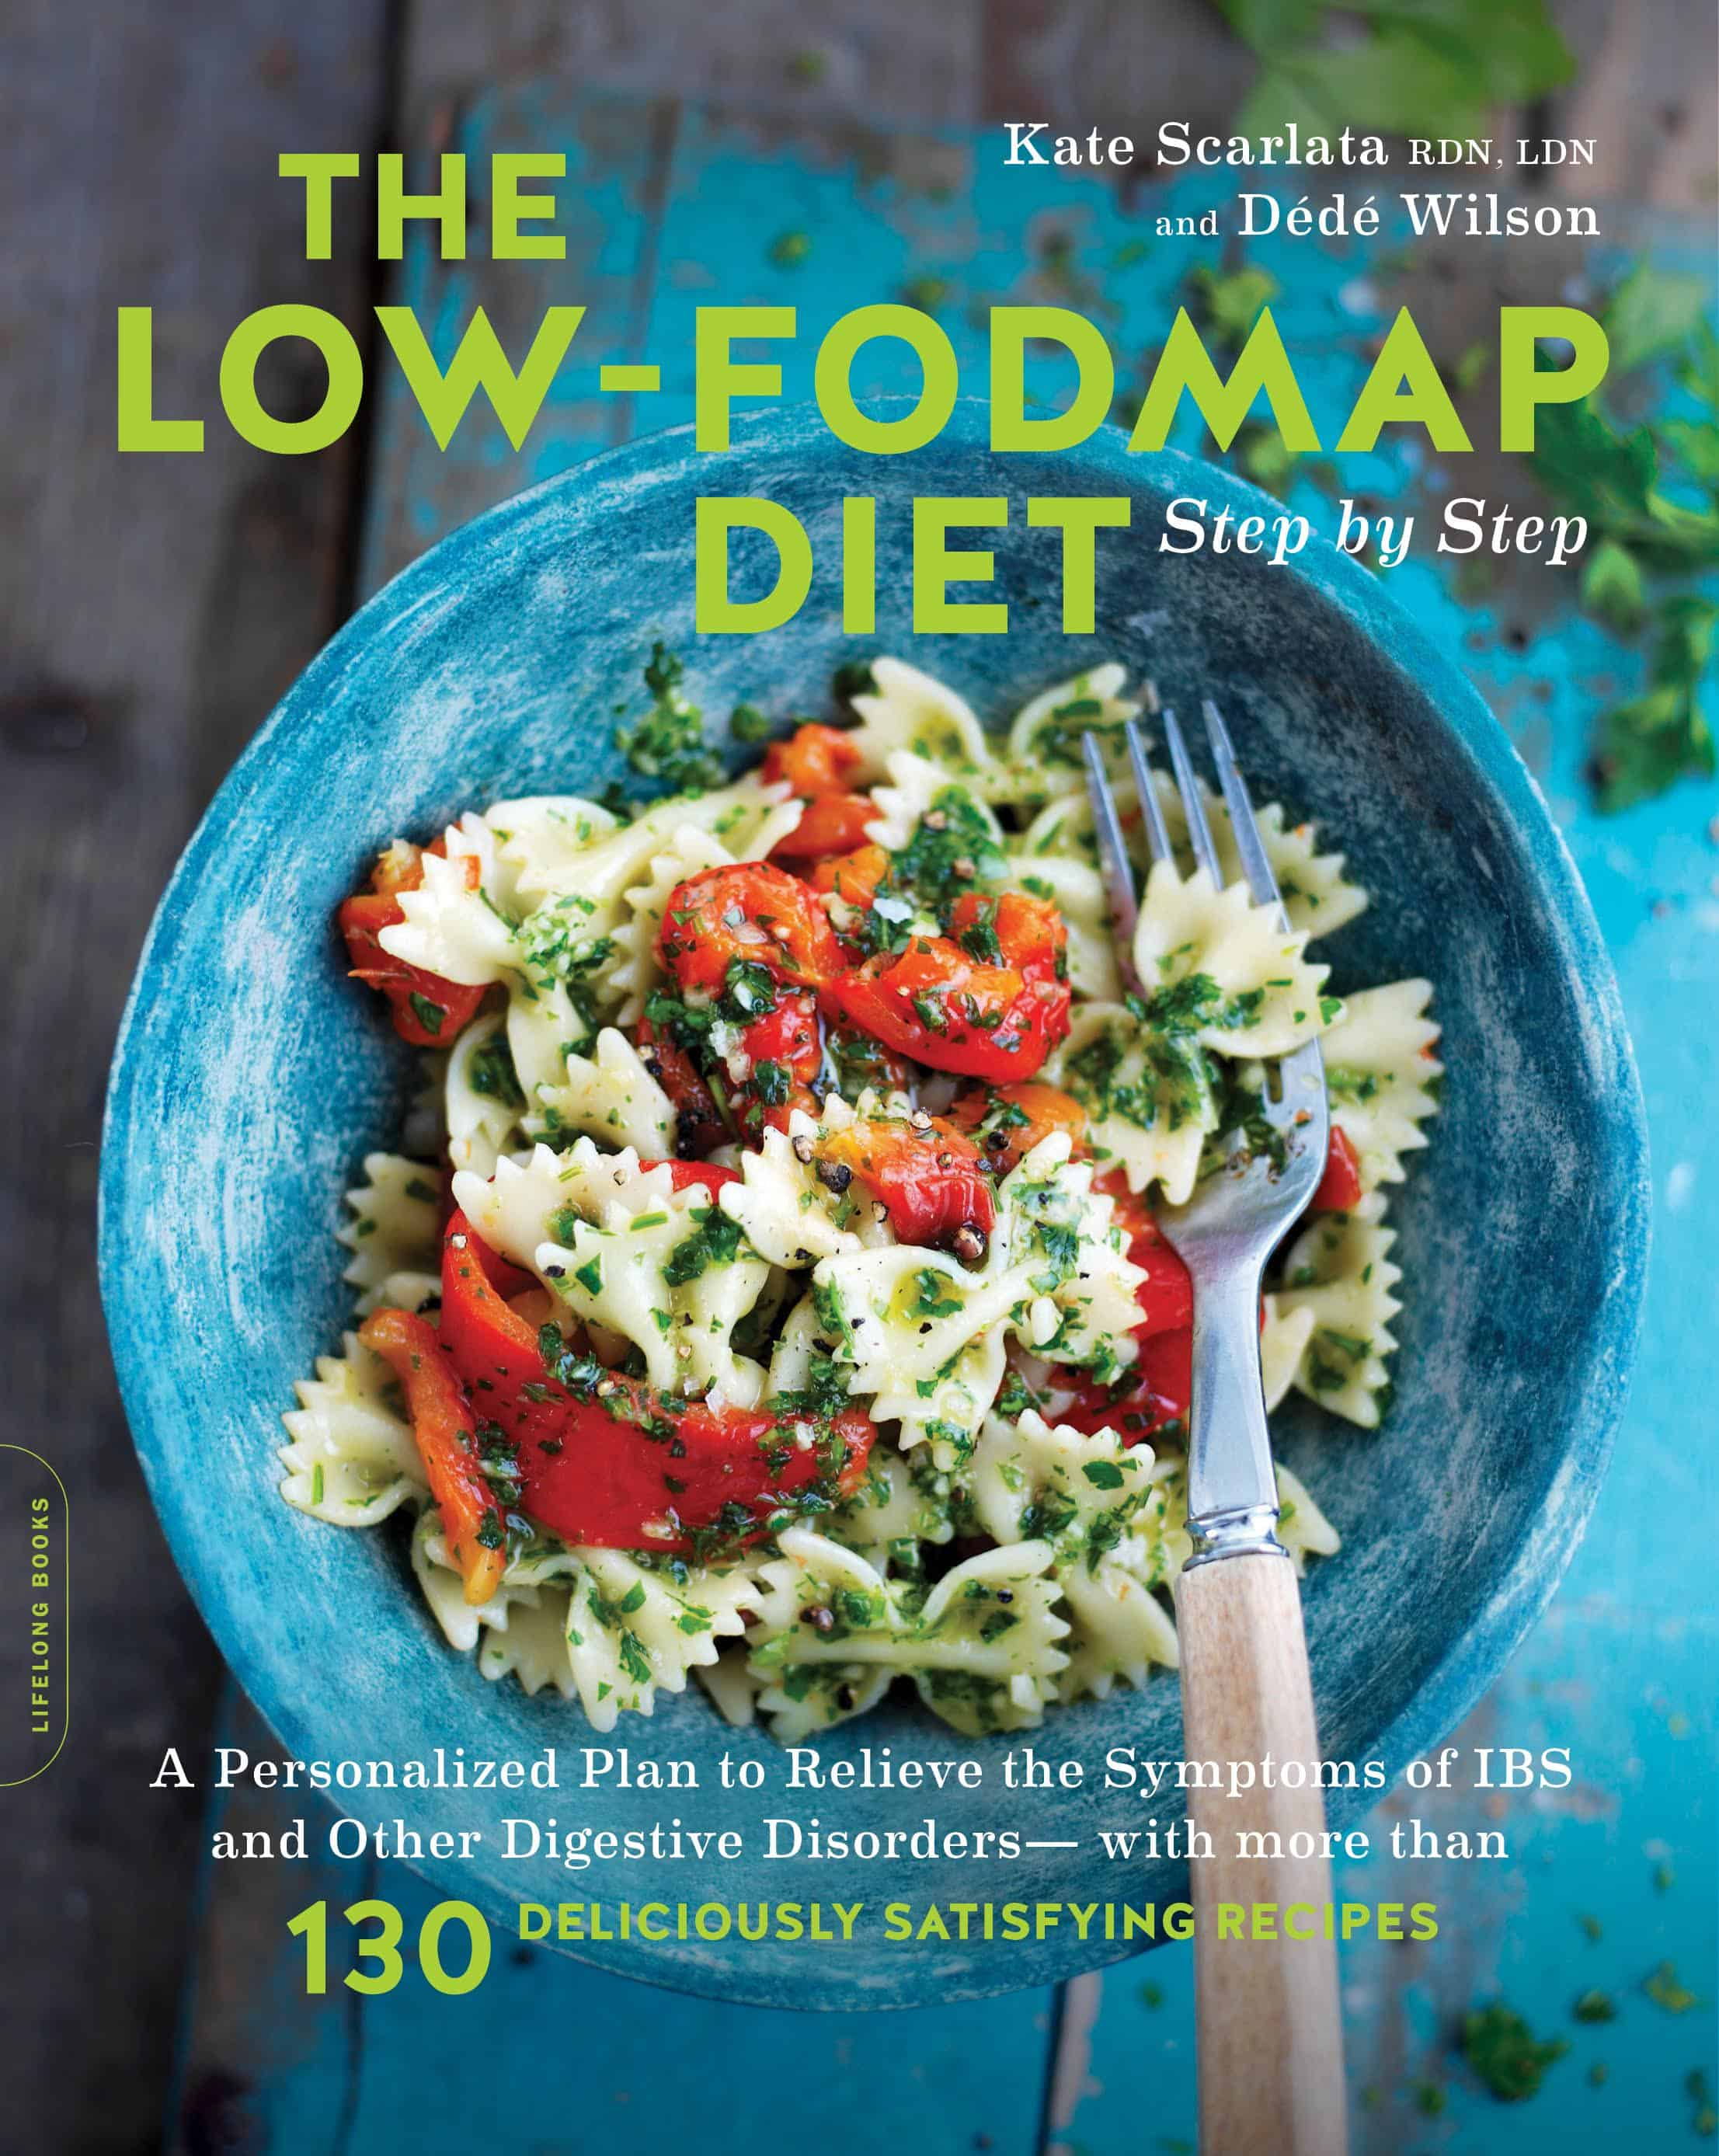 What's a FODAMP? Interview with Kate Scarlata, author of The Low-Fodmap Diet @shawsimpleswaps